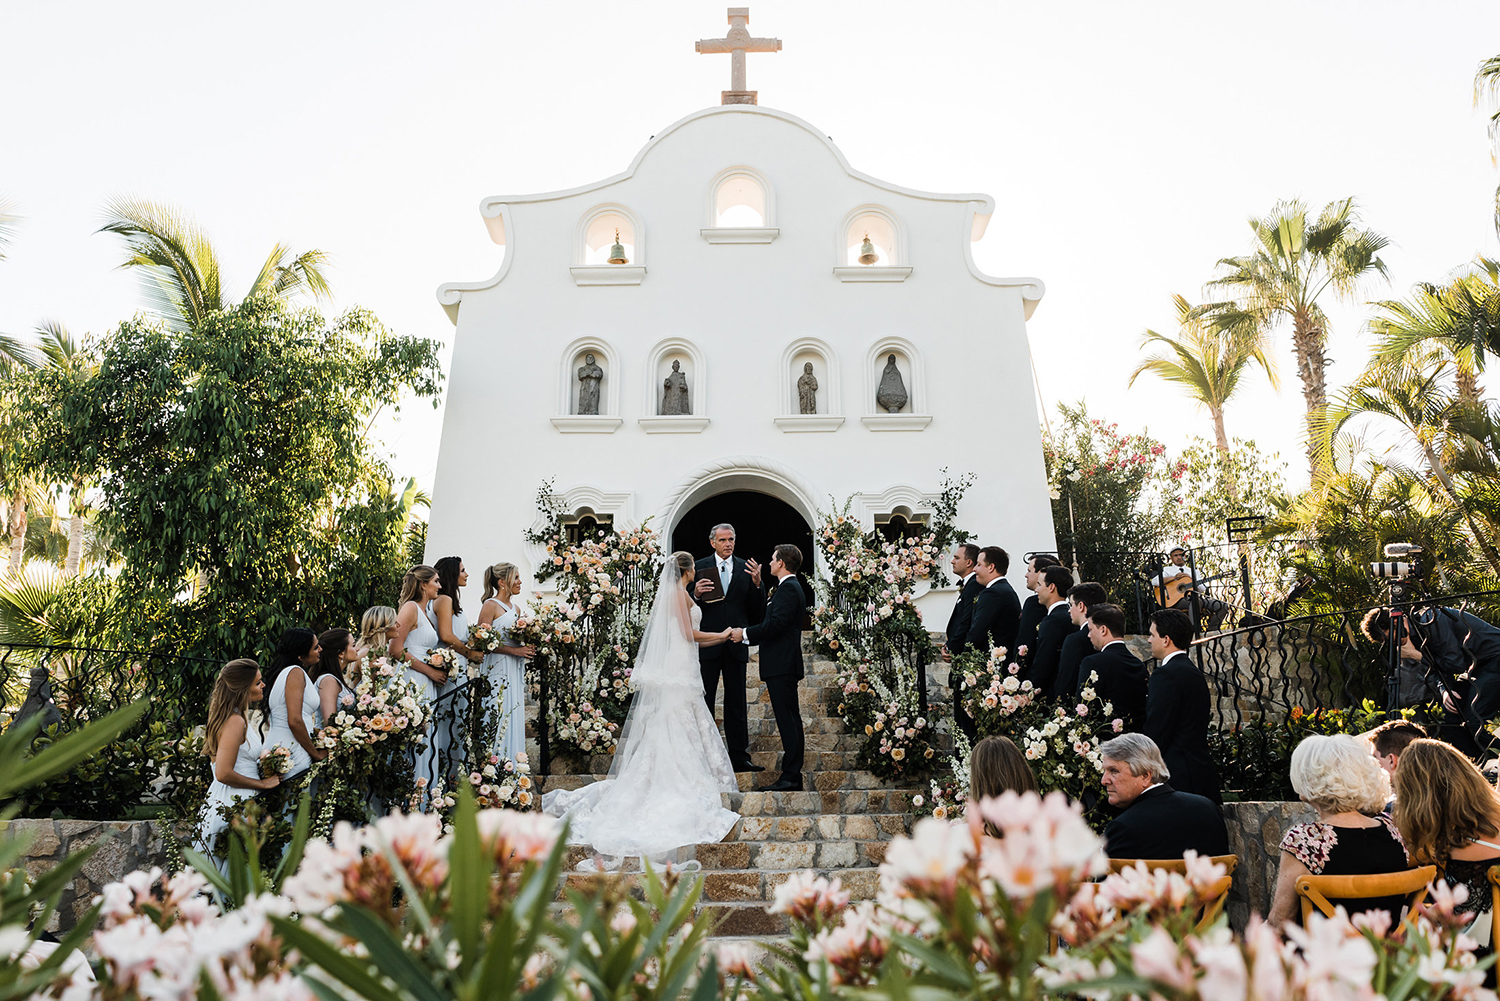 stucco, chapel wedding ceremony in mexico - flowers - blush, cream